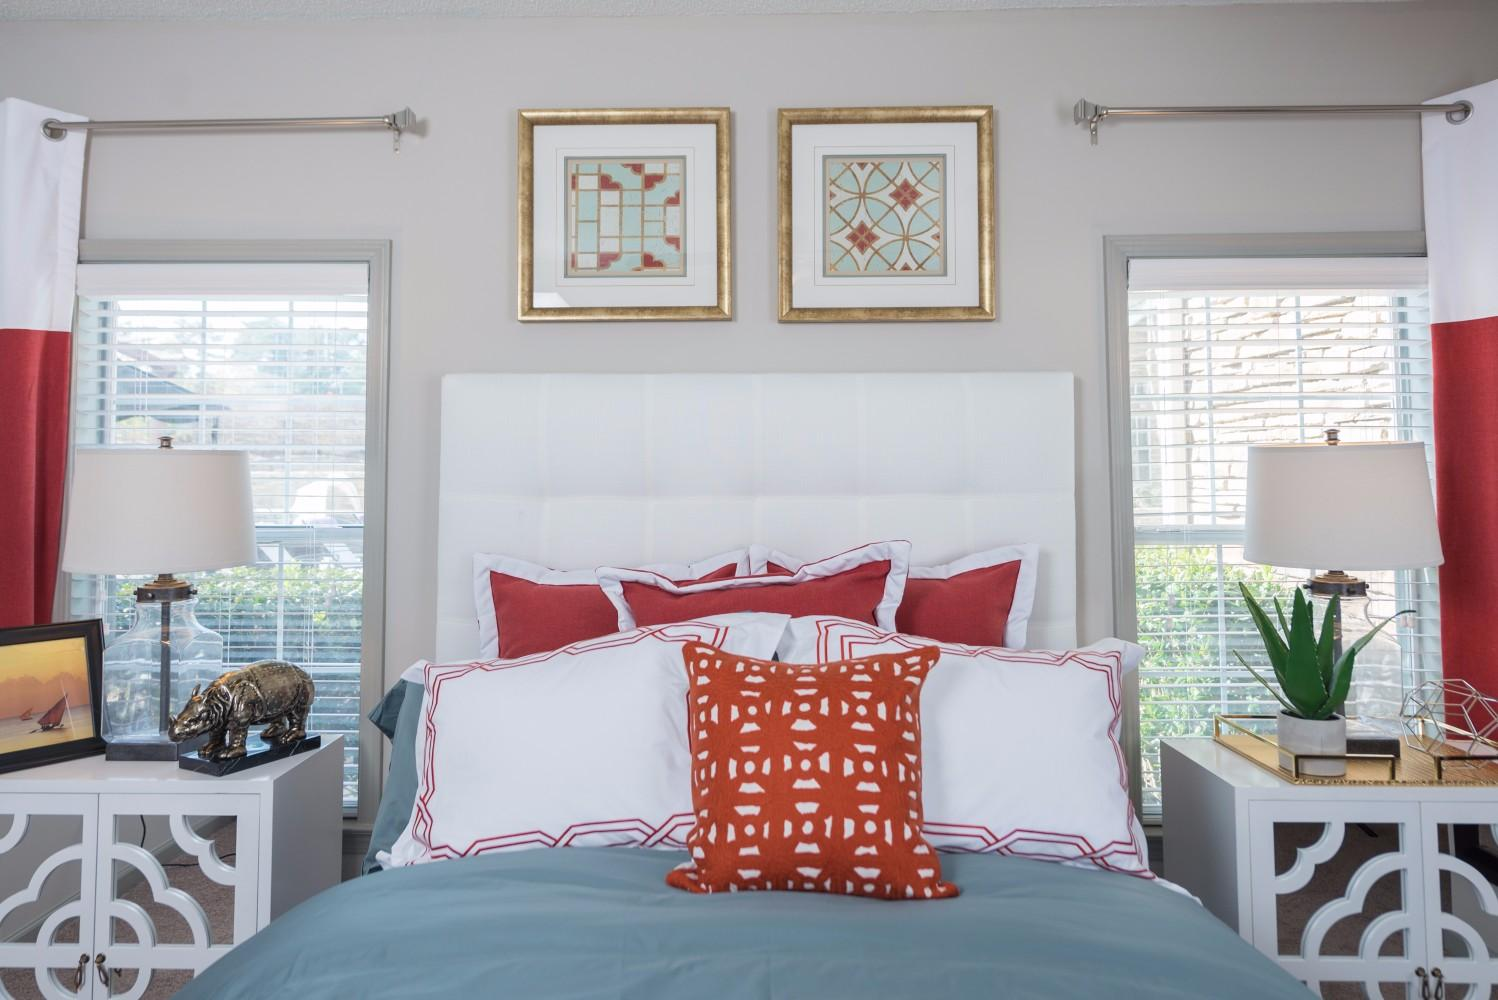 3 Bedroom Apartments In Springs Ga 28 Images The